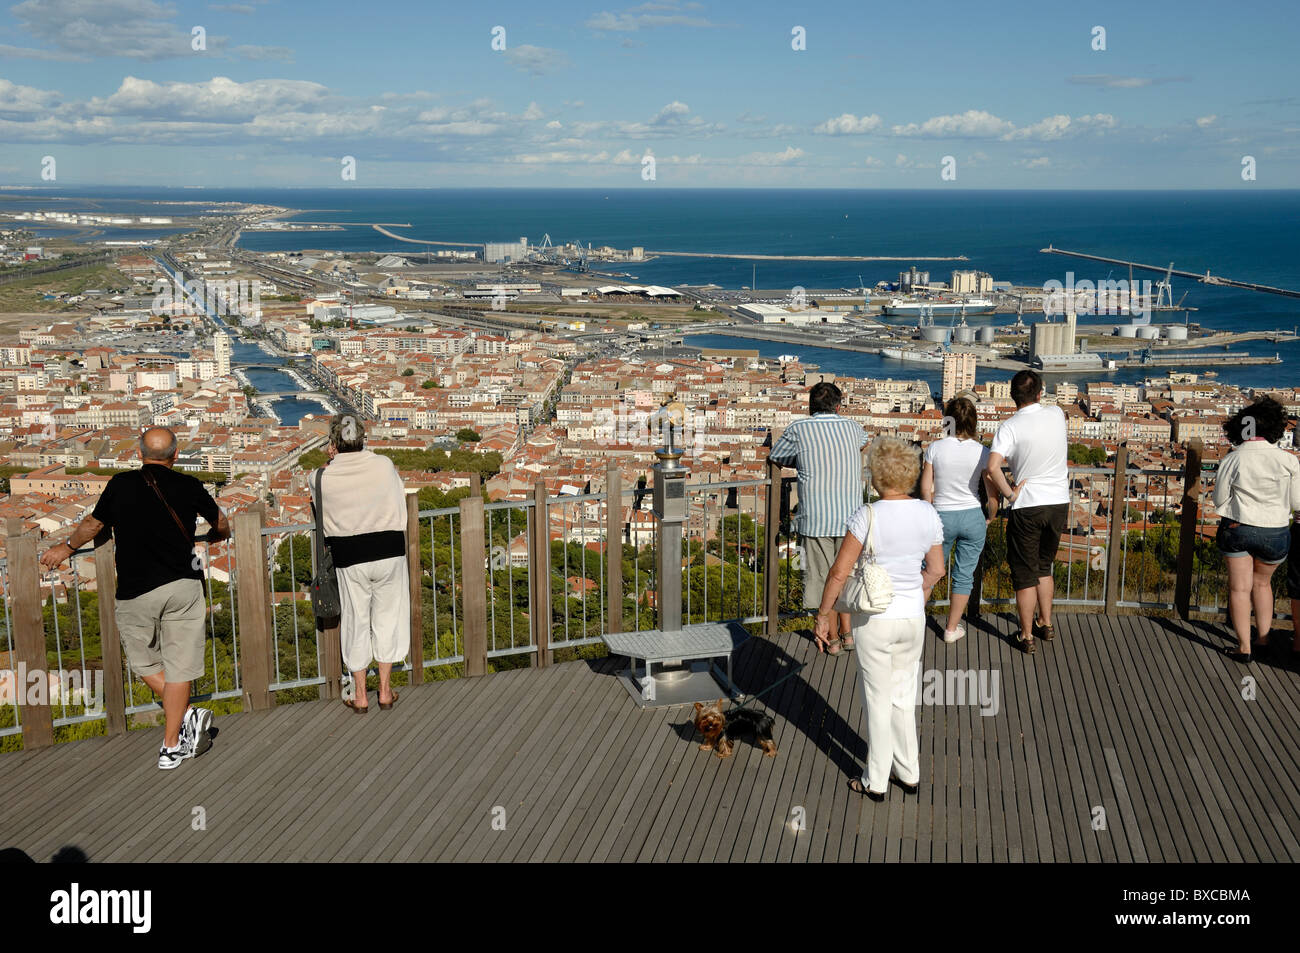 Tourists at the Mont St-Clair Viewpoint overlooking the Canal City or Town of Sète, Herault, France - Stock Image